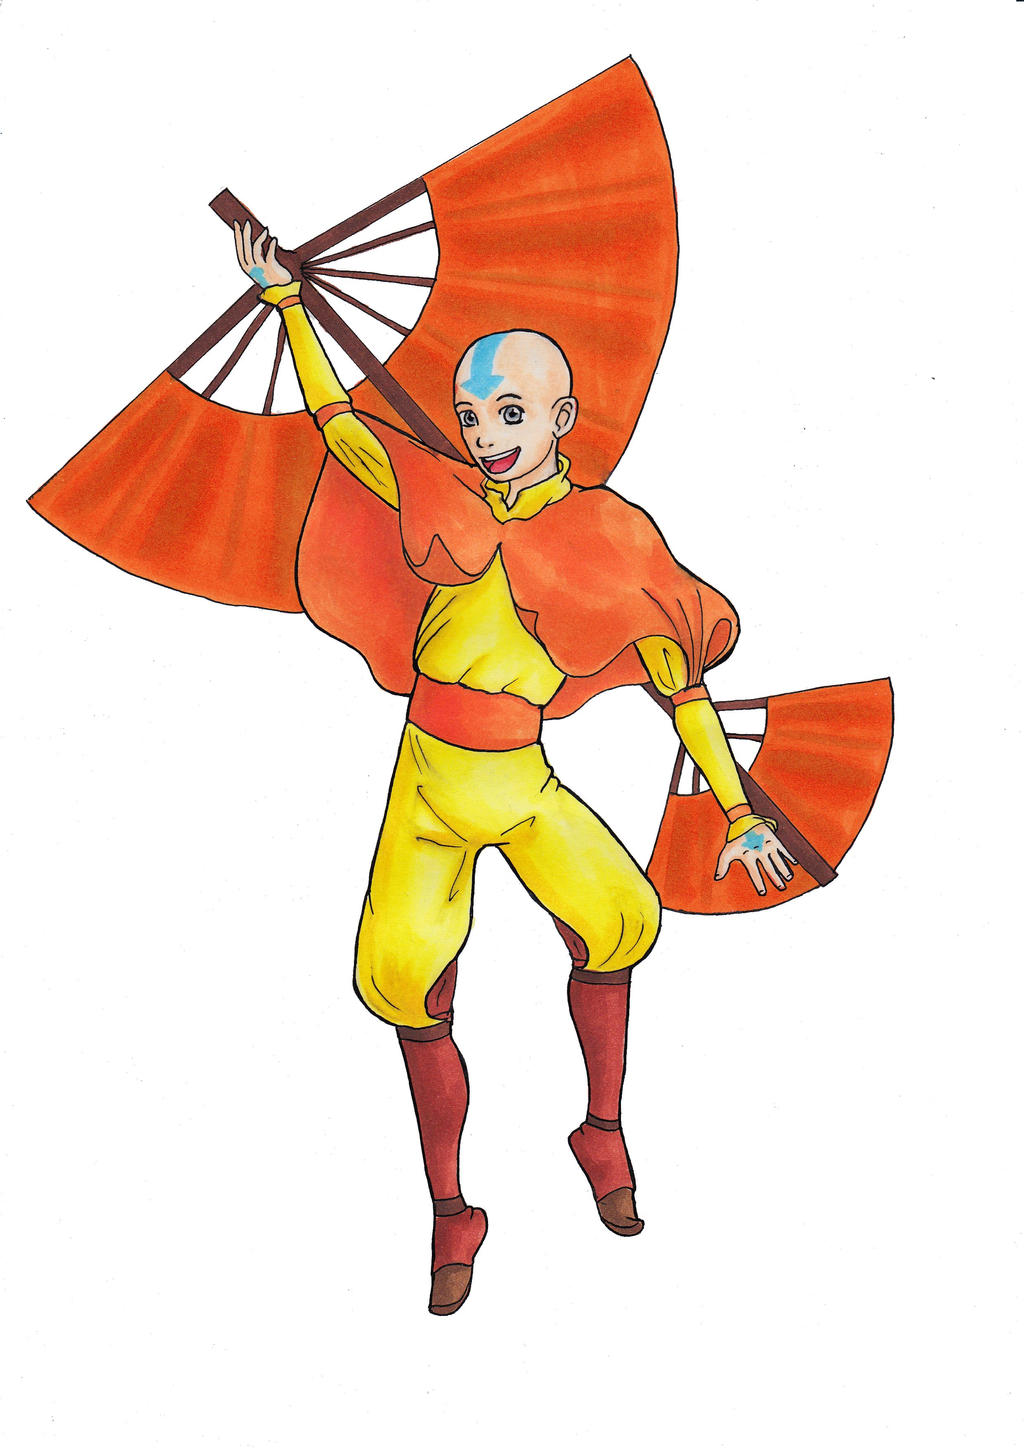 Avatar the Last Airbender - Aang by crittercat